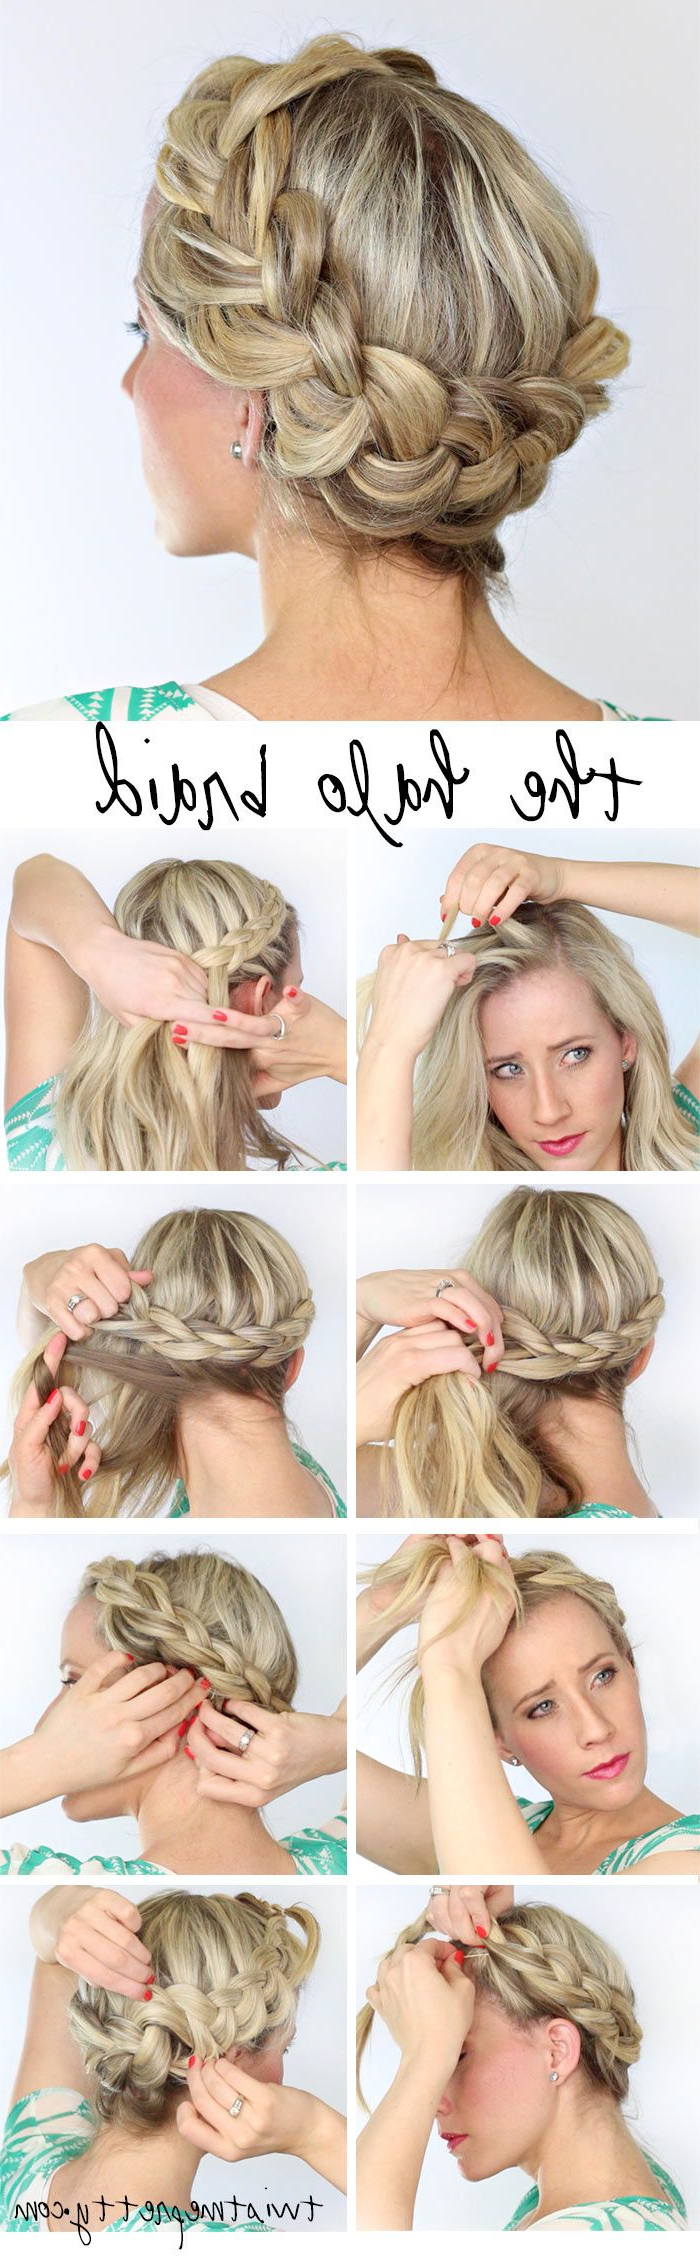 Pin On Hairstyles & Braids Within Current Messy Crown Braid Hairstyles (View 16 of 20)